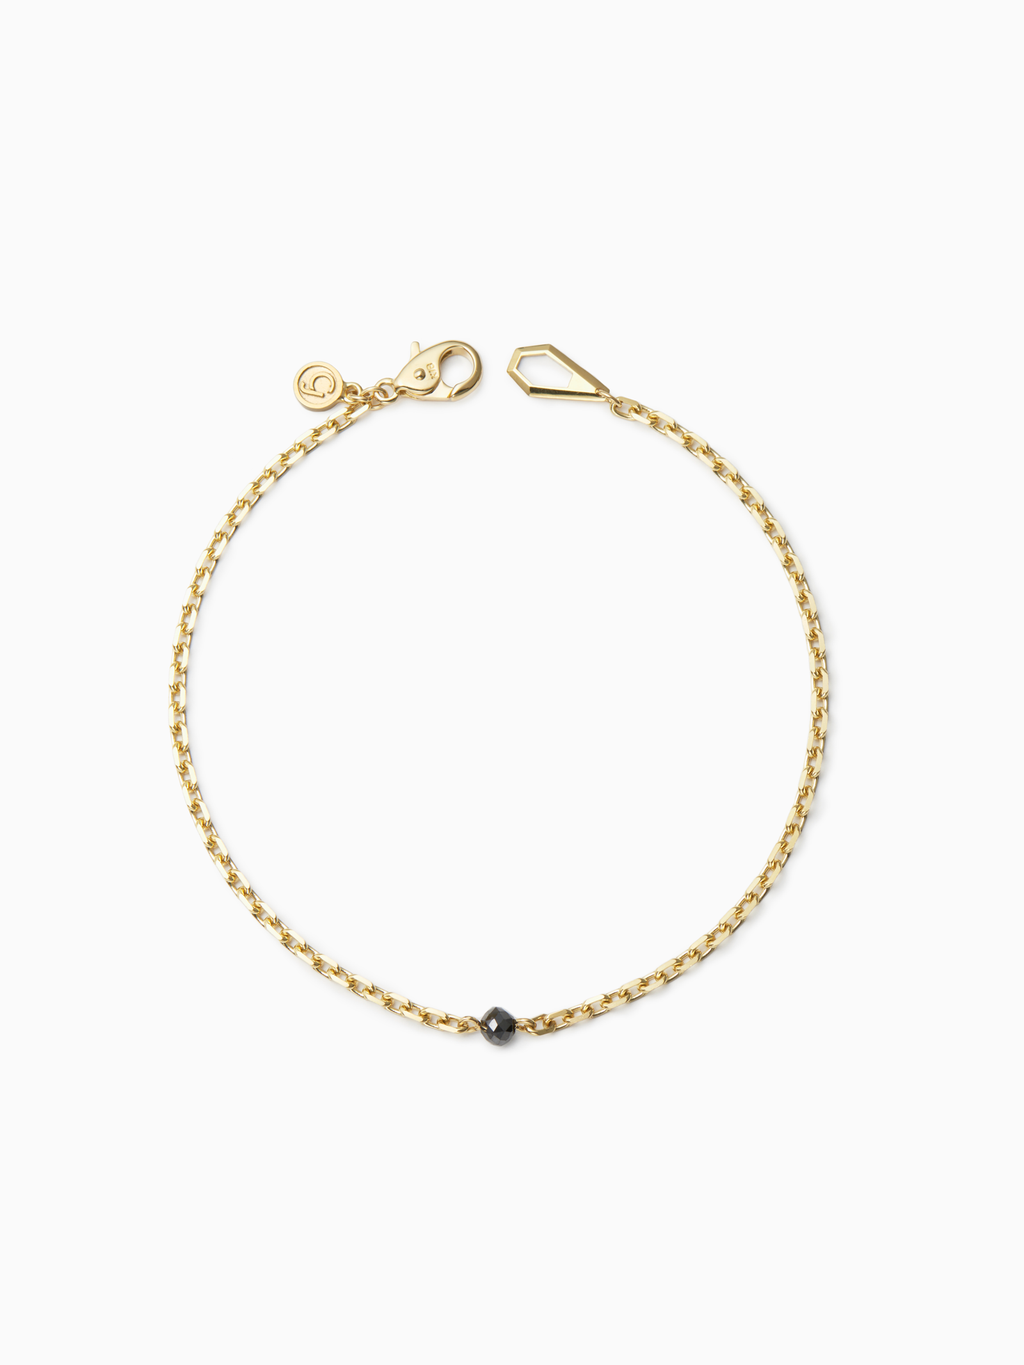 Alect / Bracelet / Diamond / Gold